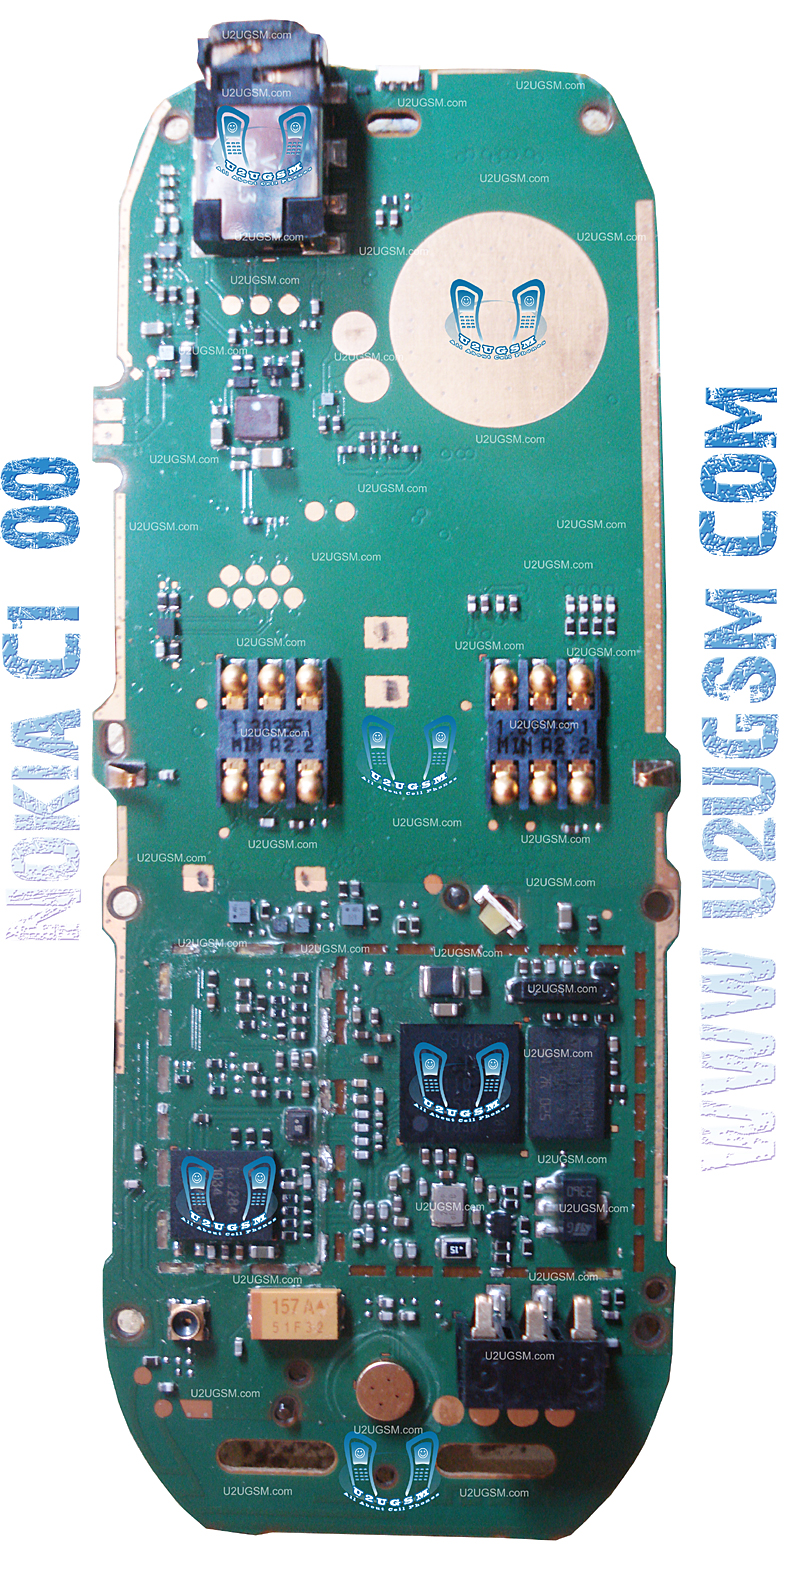 Nokia C1-00 Full PCB Diagram Mother Board Layout.